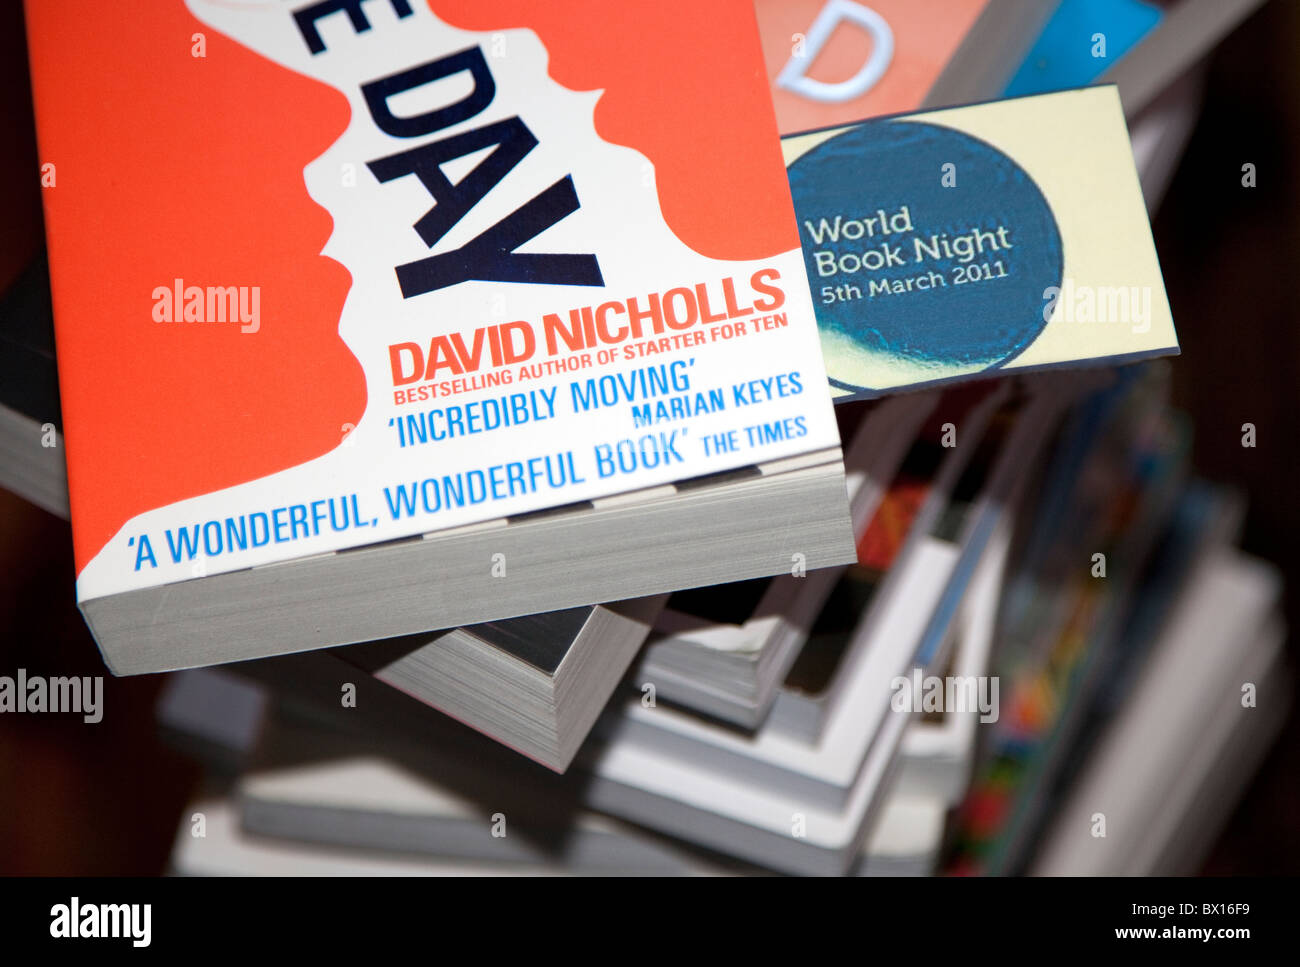 World Book Night  5th March 2011: 1 million books to be given away - Stock Image